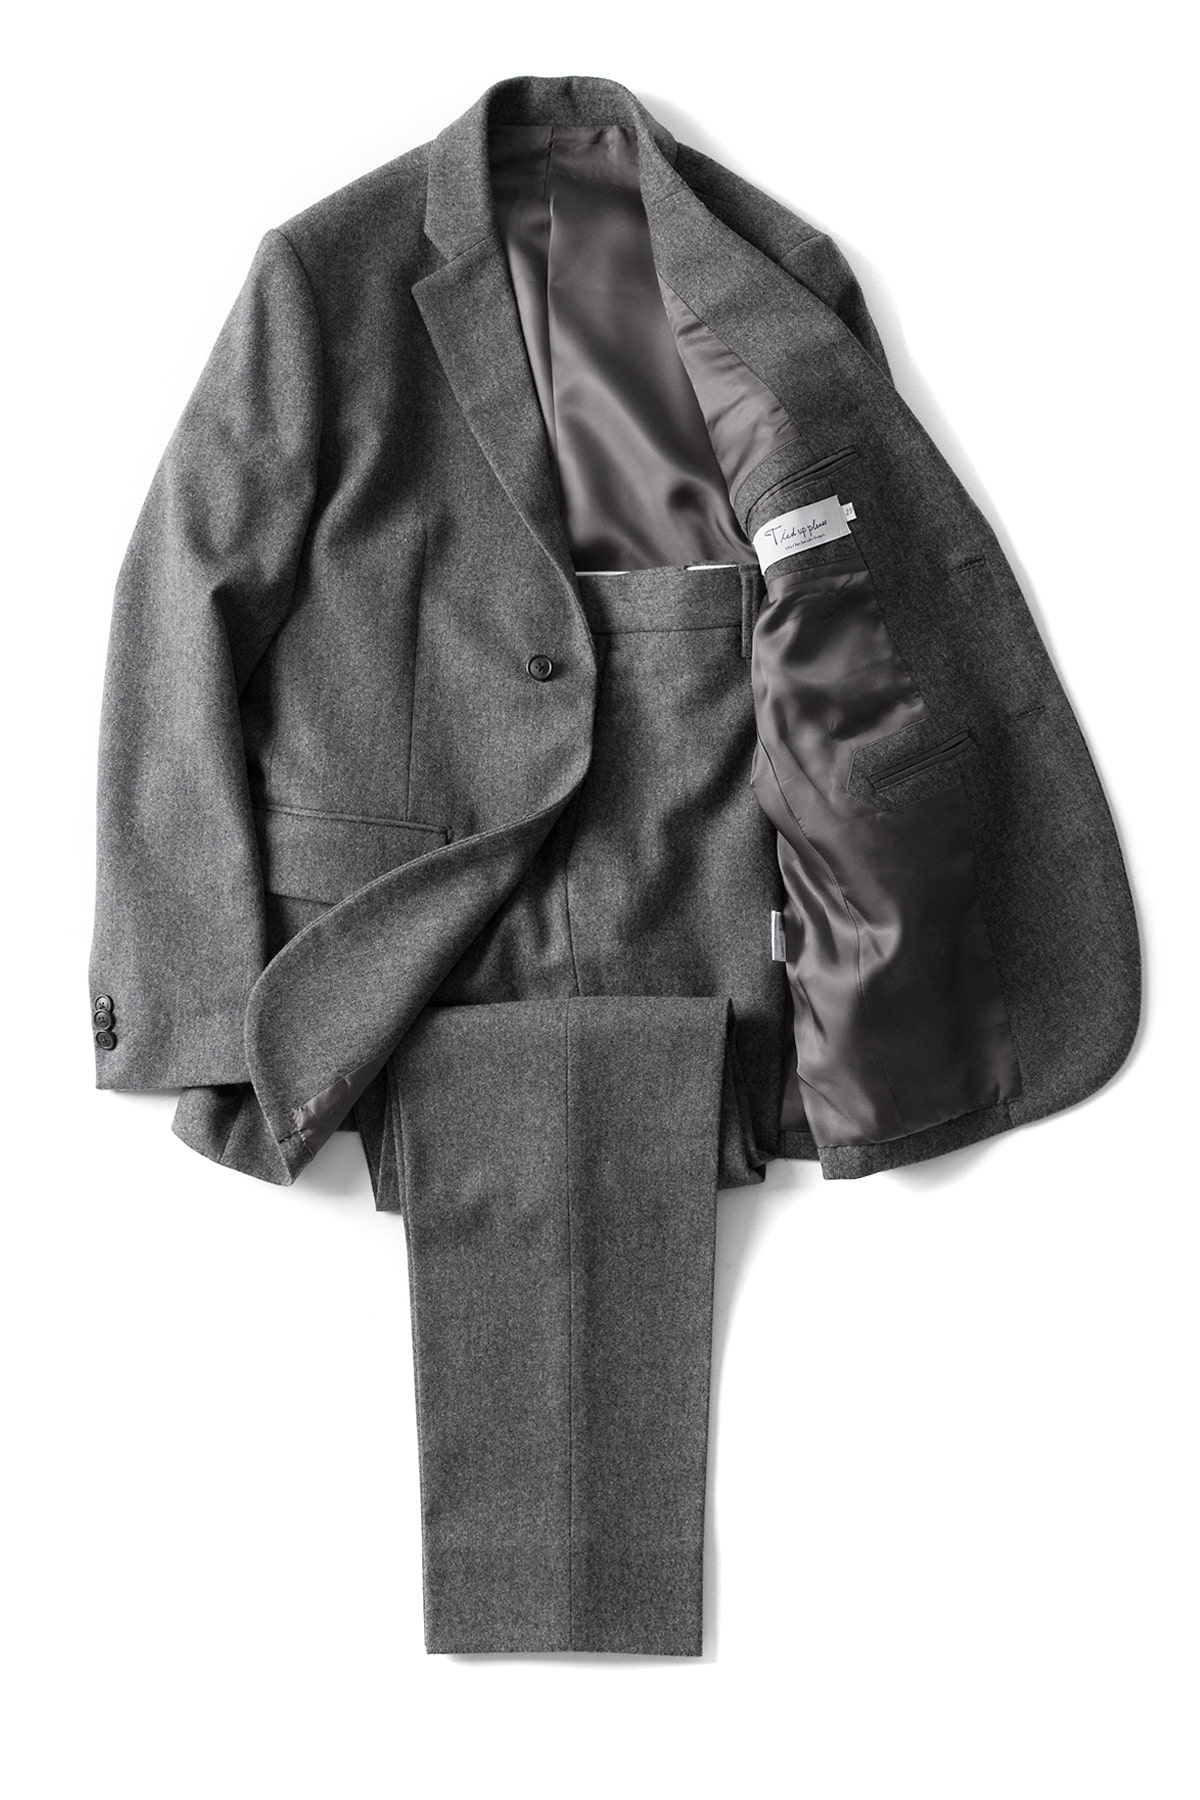 EEL/Tied Up Please : Stylish Man 2piece (Charcoal)